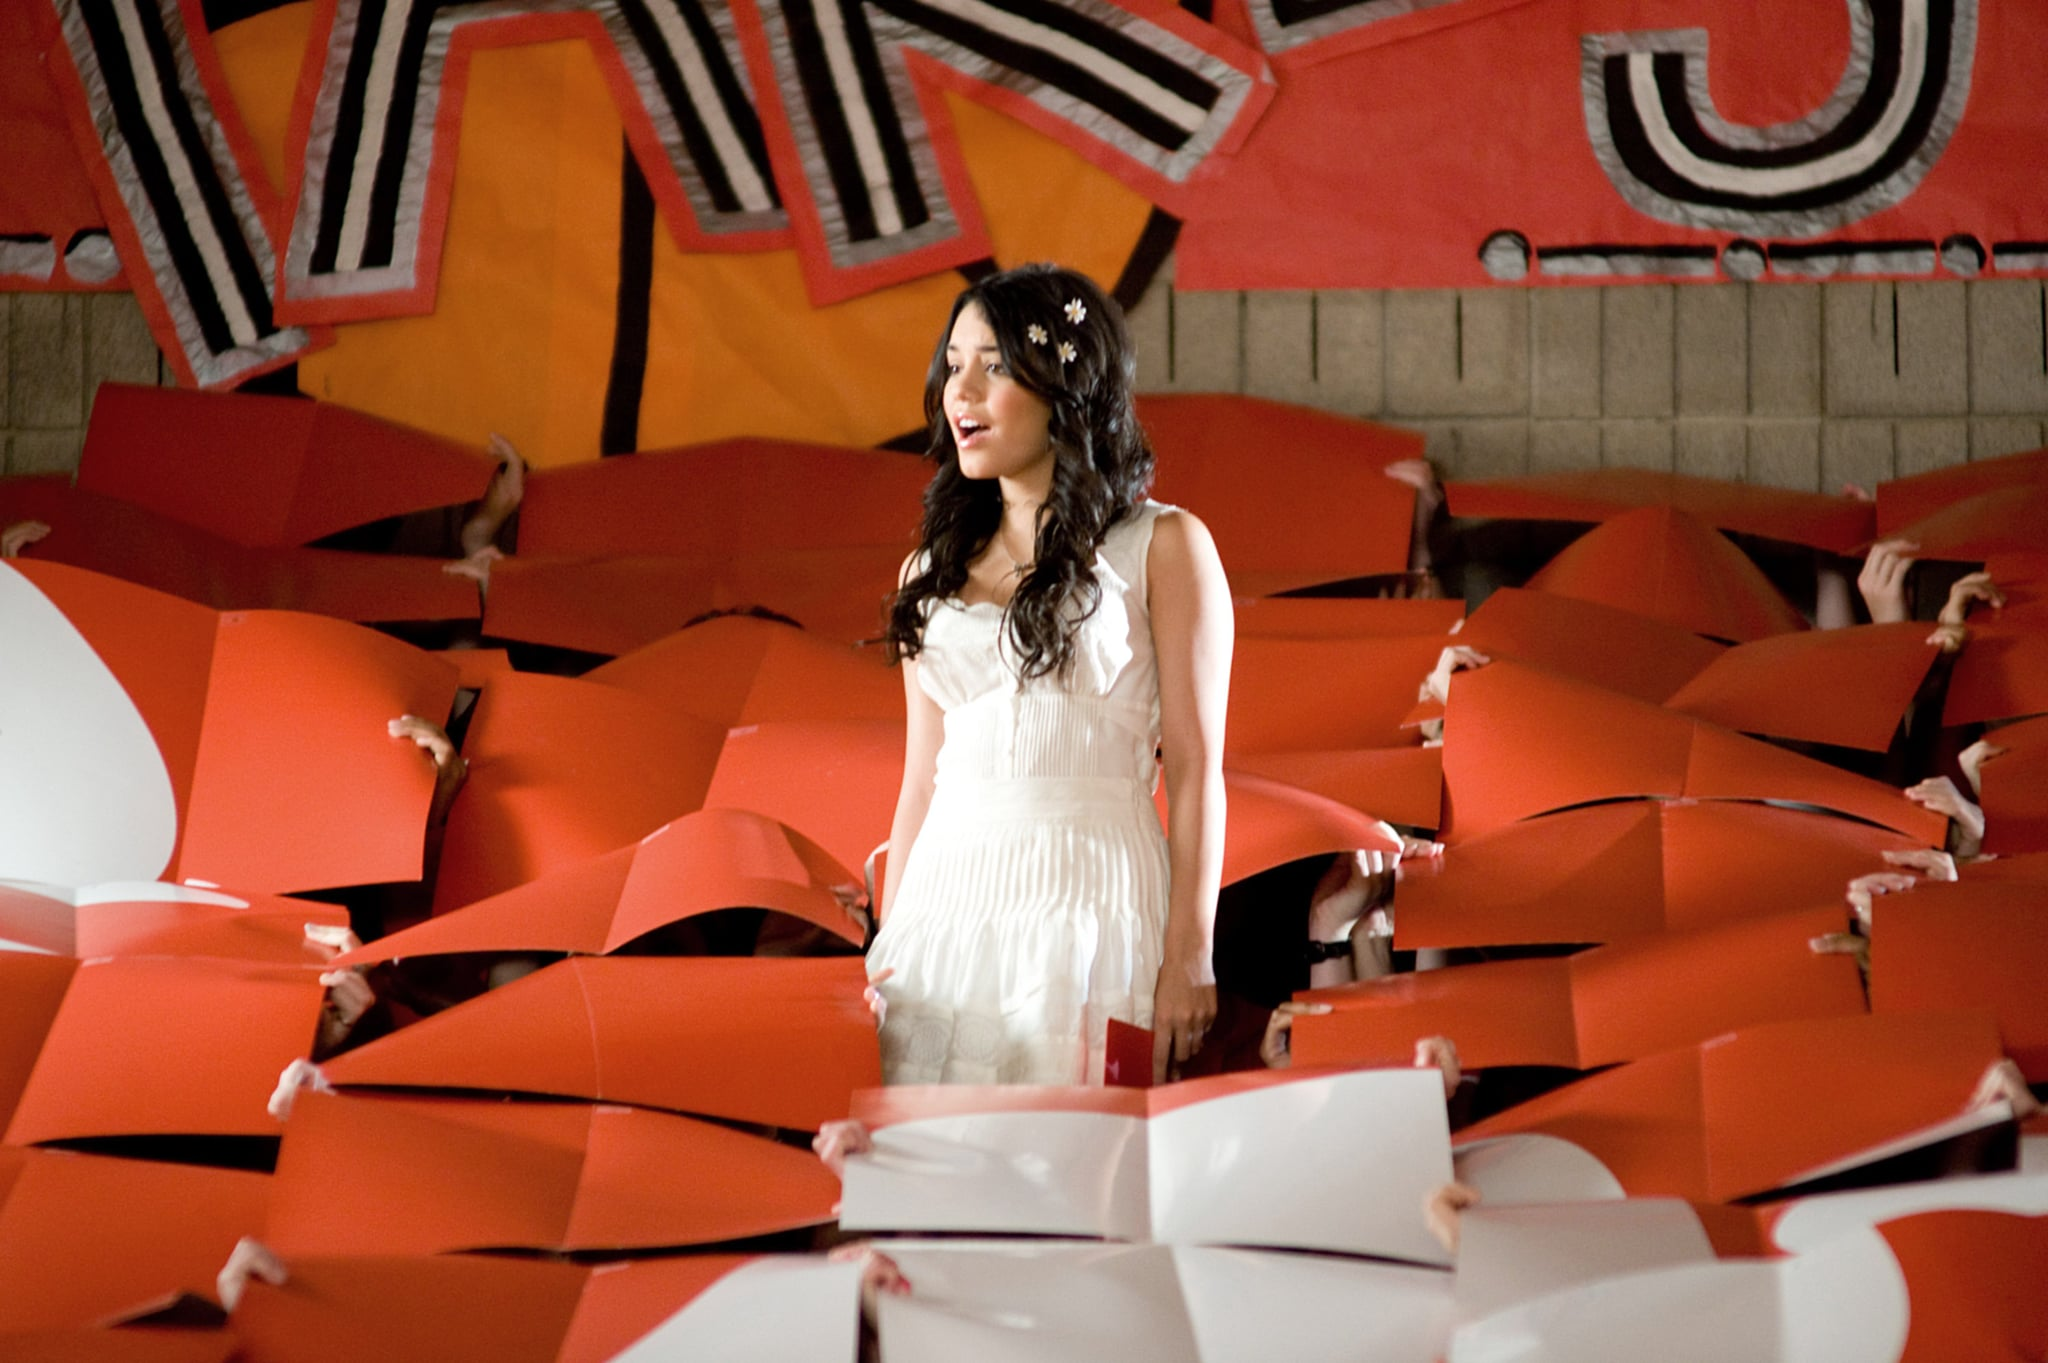 HIGH SCHOOL MUSICAL 3: SENIOR YEAR, Vanessa Hudgens, 2008. Walt Disney Co./courtesy Everett Collection